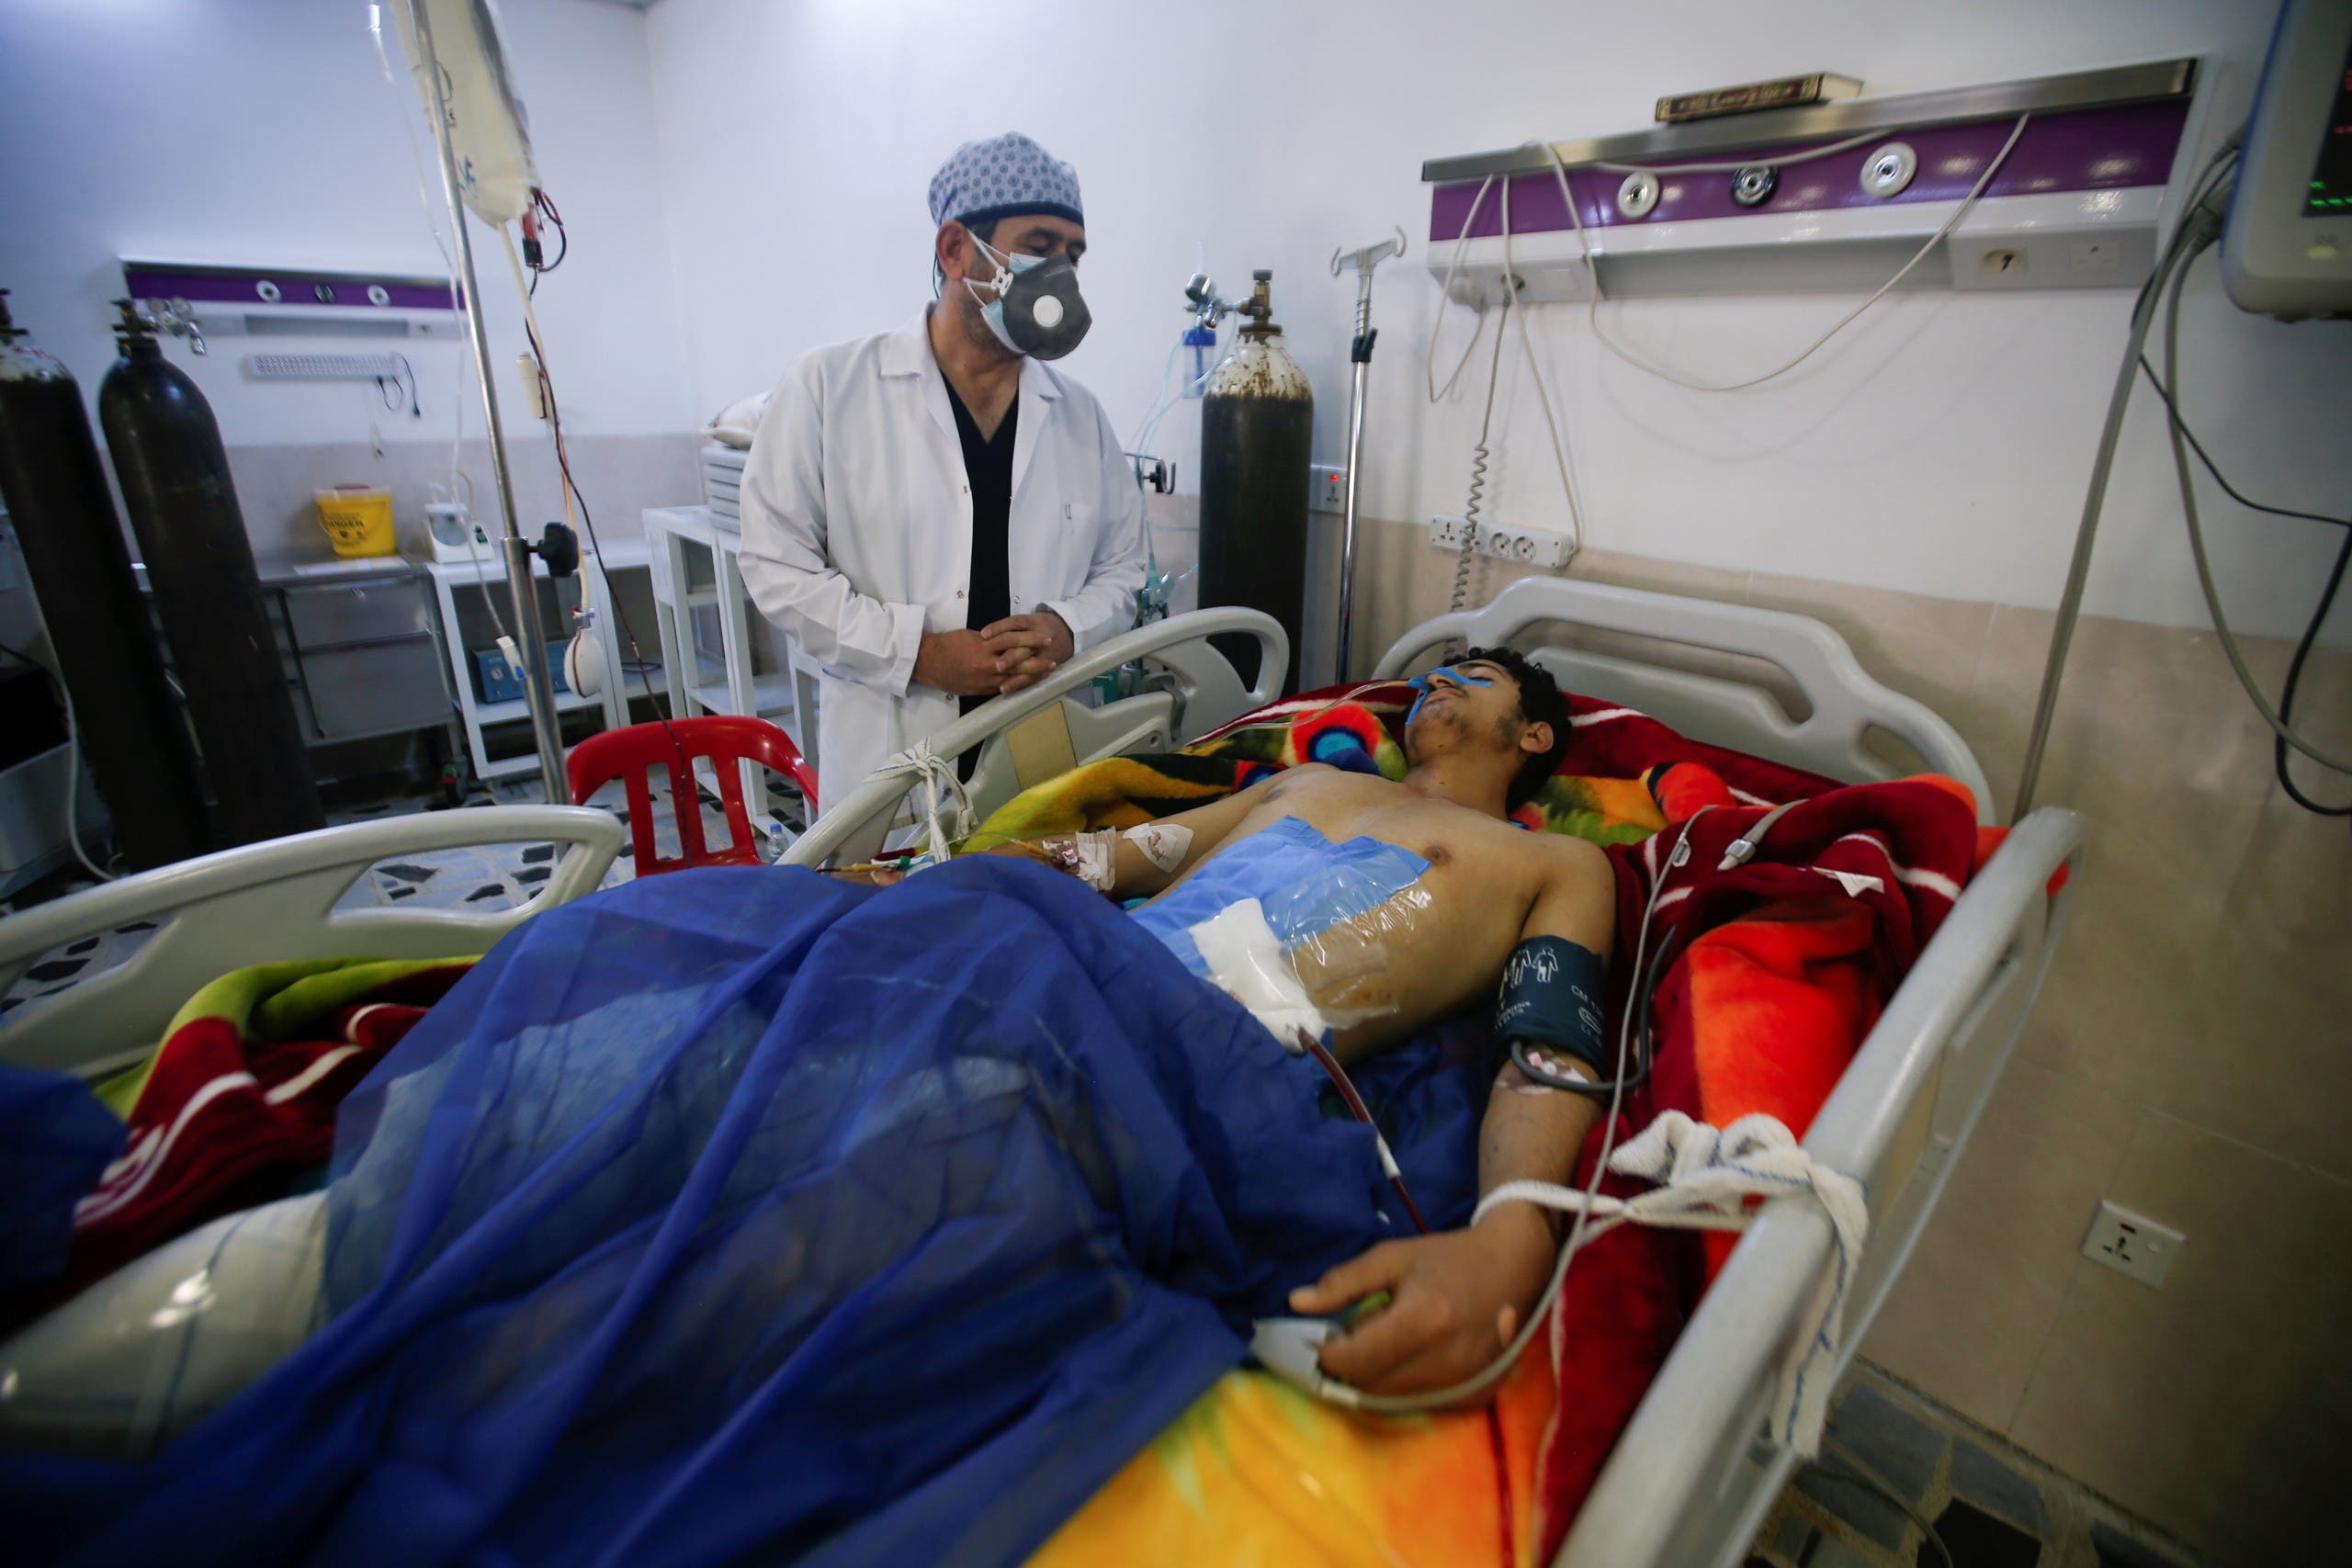 A man is treated at a hospital after he was injured during a rocket attack on U.S.-led forces in and near Erbil International Airport, in Erbil. (Reuters)